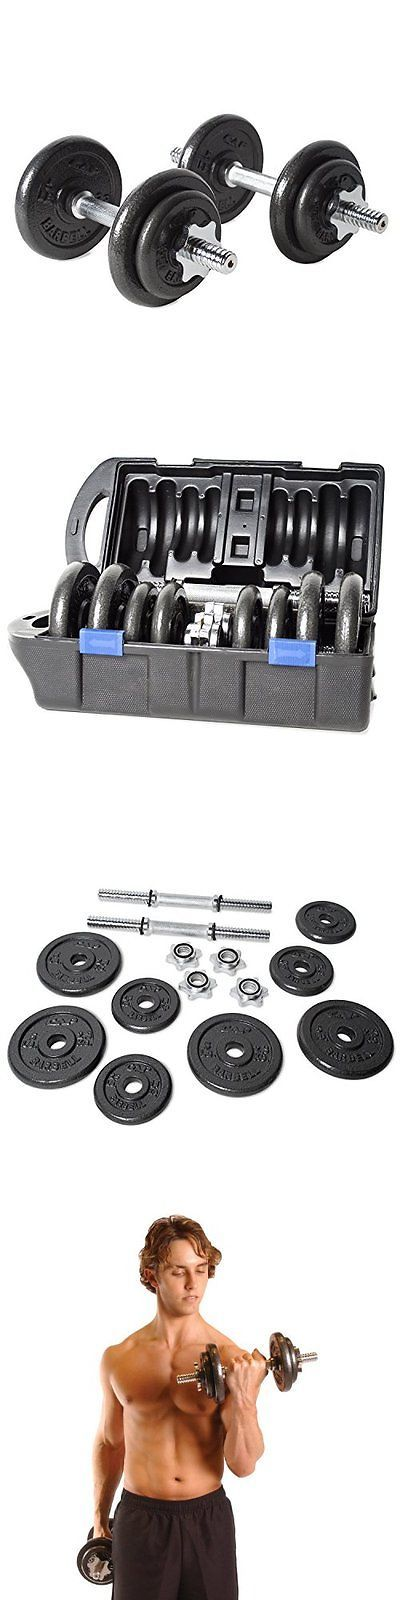 Dumbbells 137865: Cap Barbell 40-Pound Adjustable Dumbbell Set With Case -> BUY IT NOW ONLY: $60.99 on eBay!